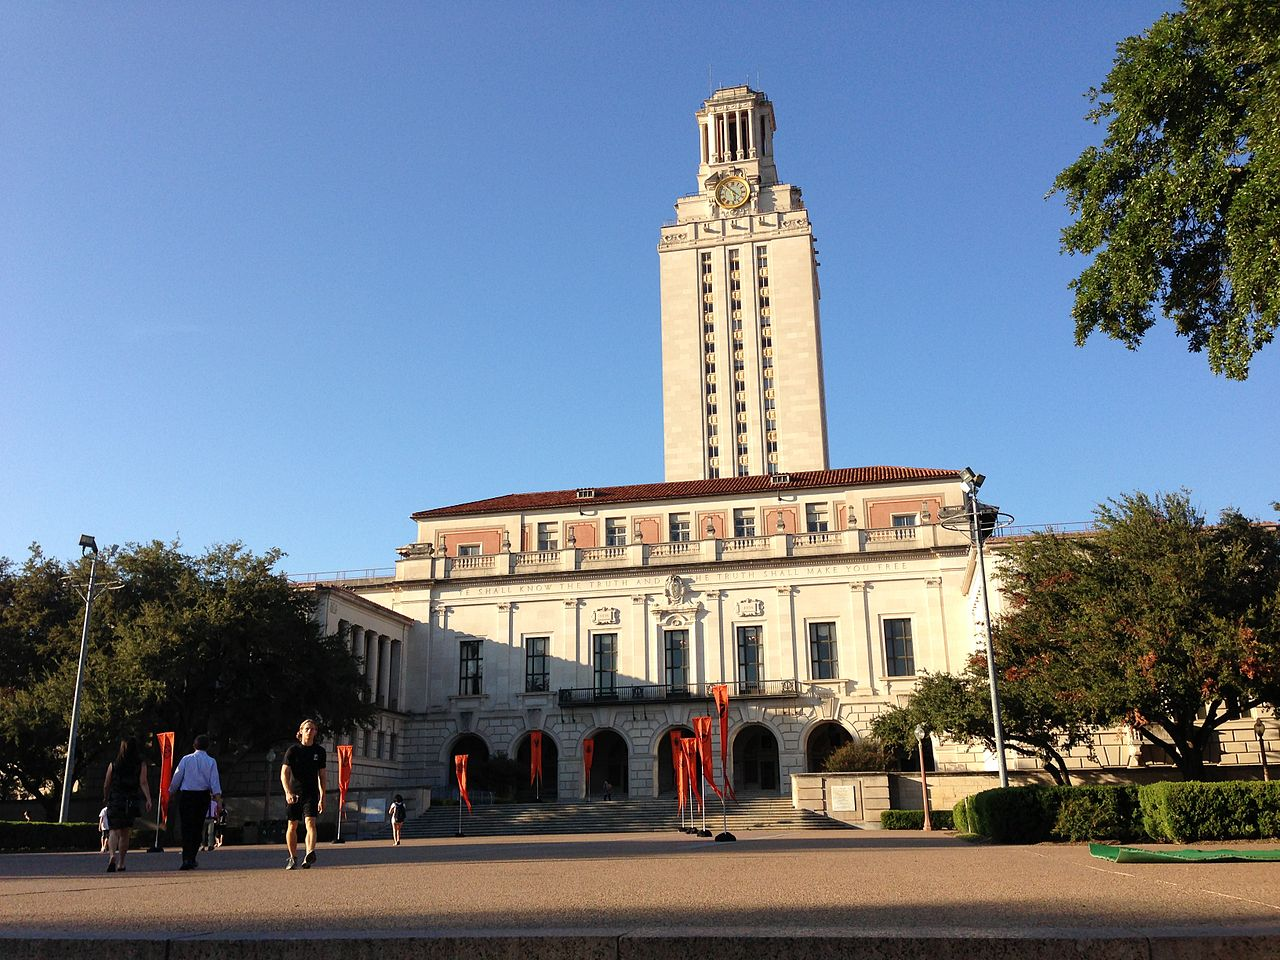 University Of Texas Organizational Chart: UT Tower - Main Building.JPG - Wikimedia Commons,Chart